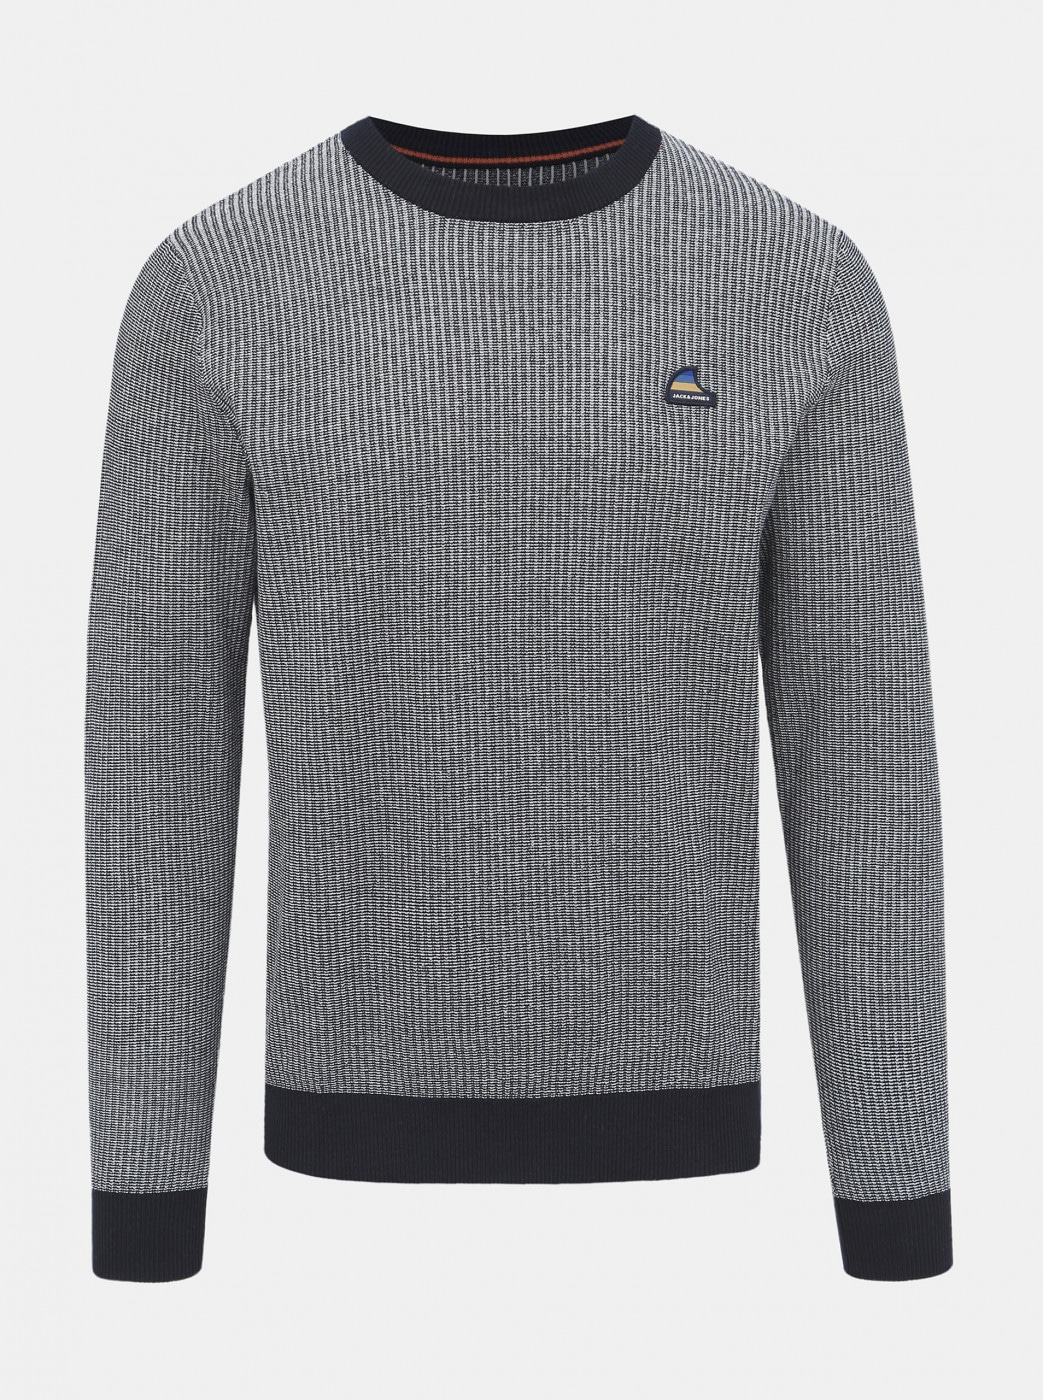 Grey Patterned Jack & Jones Neil Sweater